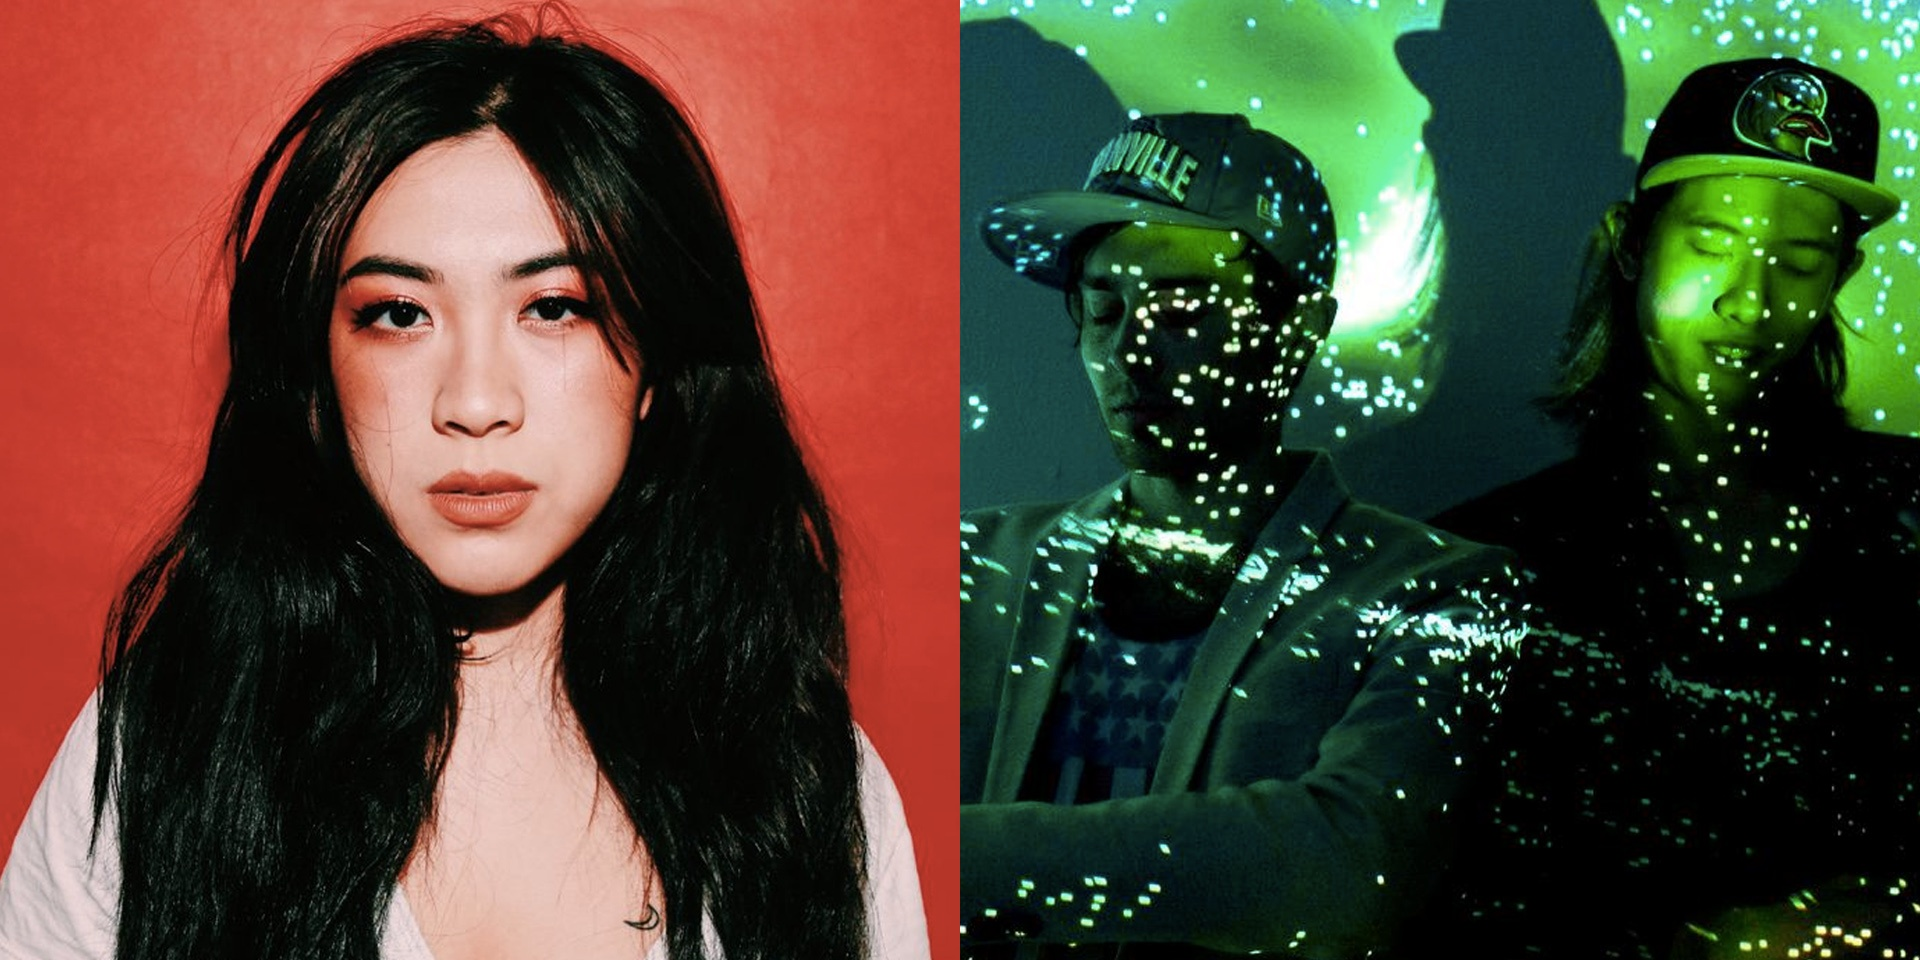 We review the good (and bad) releases of July — Sam Rui, Obedient Wives Club, O$P$, M1LDL1FE and more